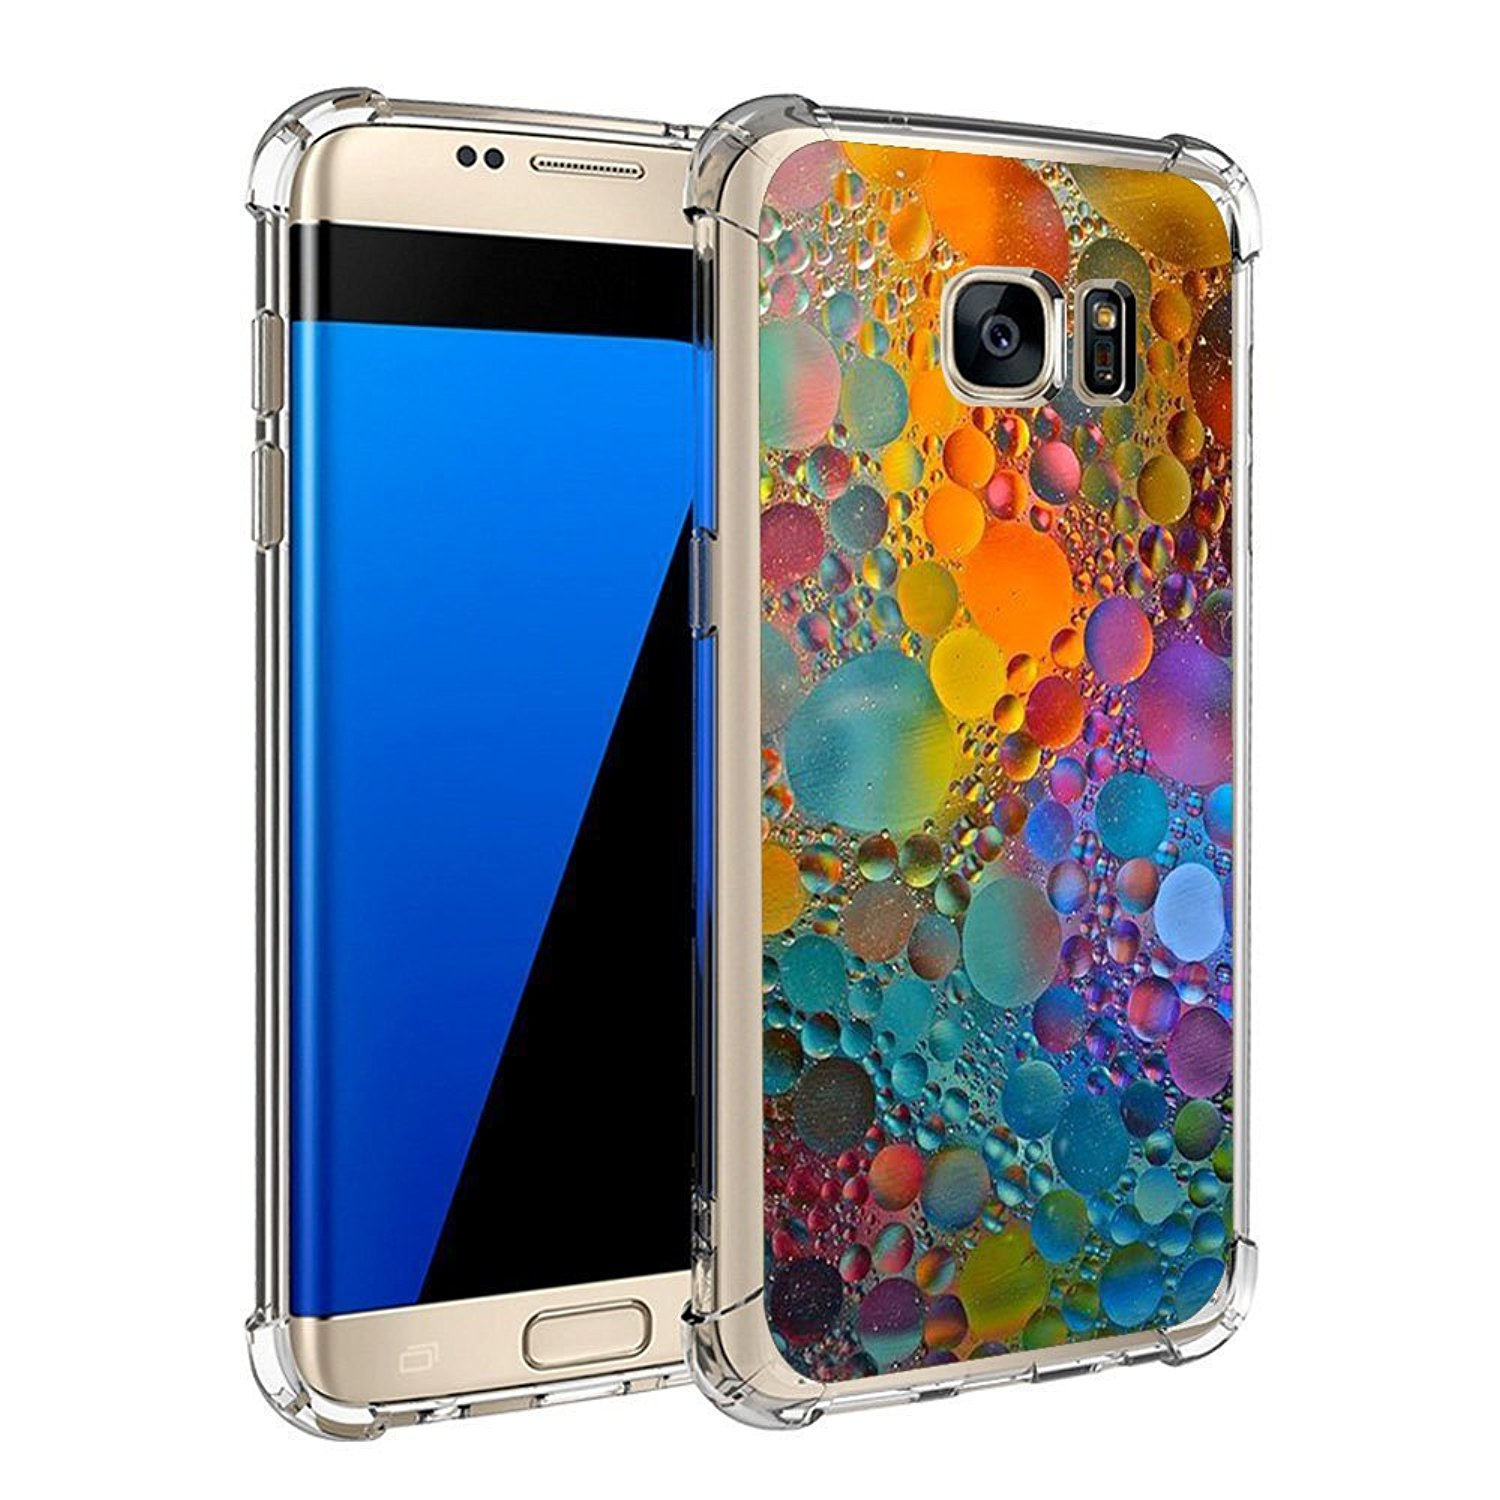 Compatible Case for Galaxy S7 S7 Edge Ultra Slim Protective Clear Soft TPU Reinforced Corners